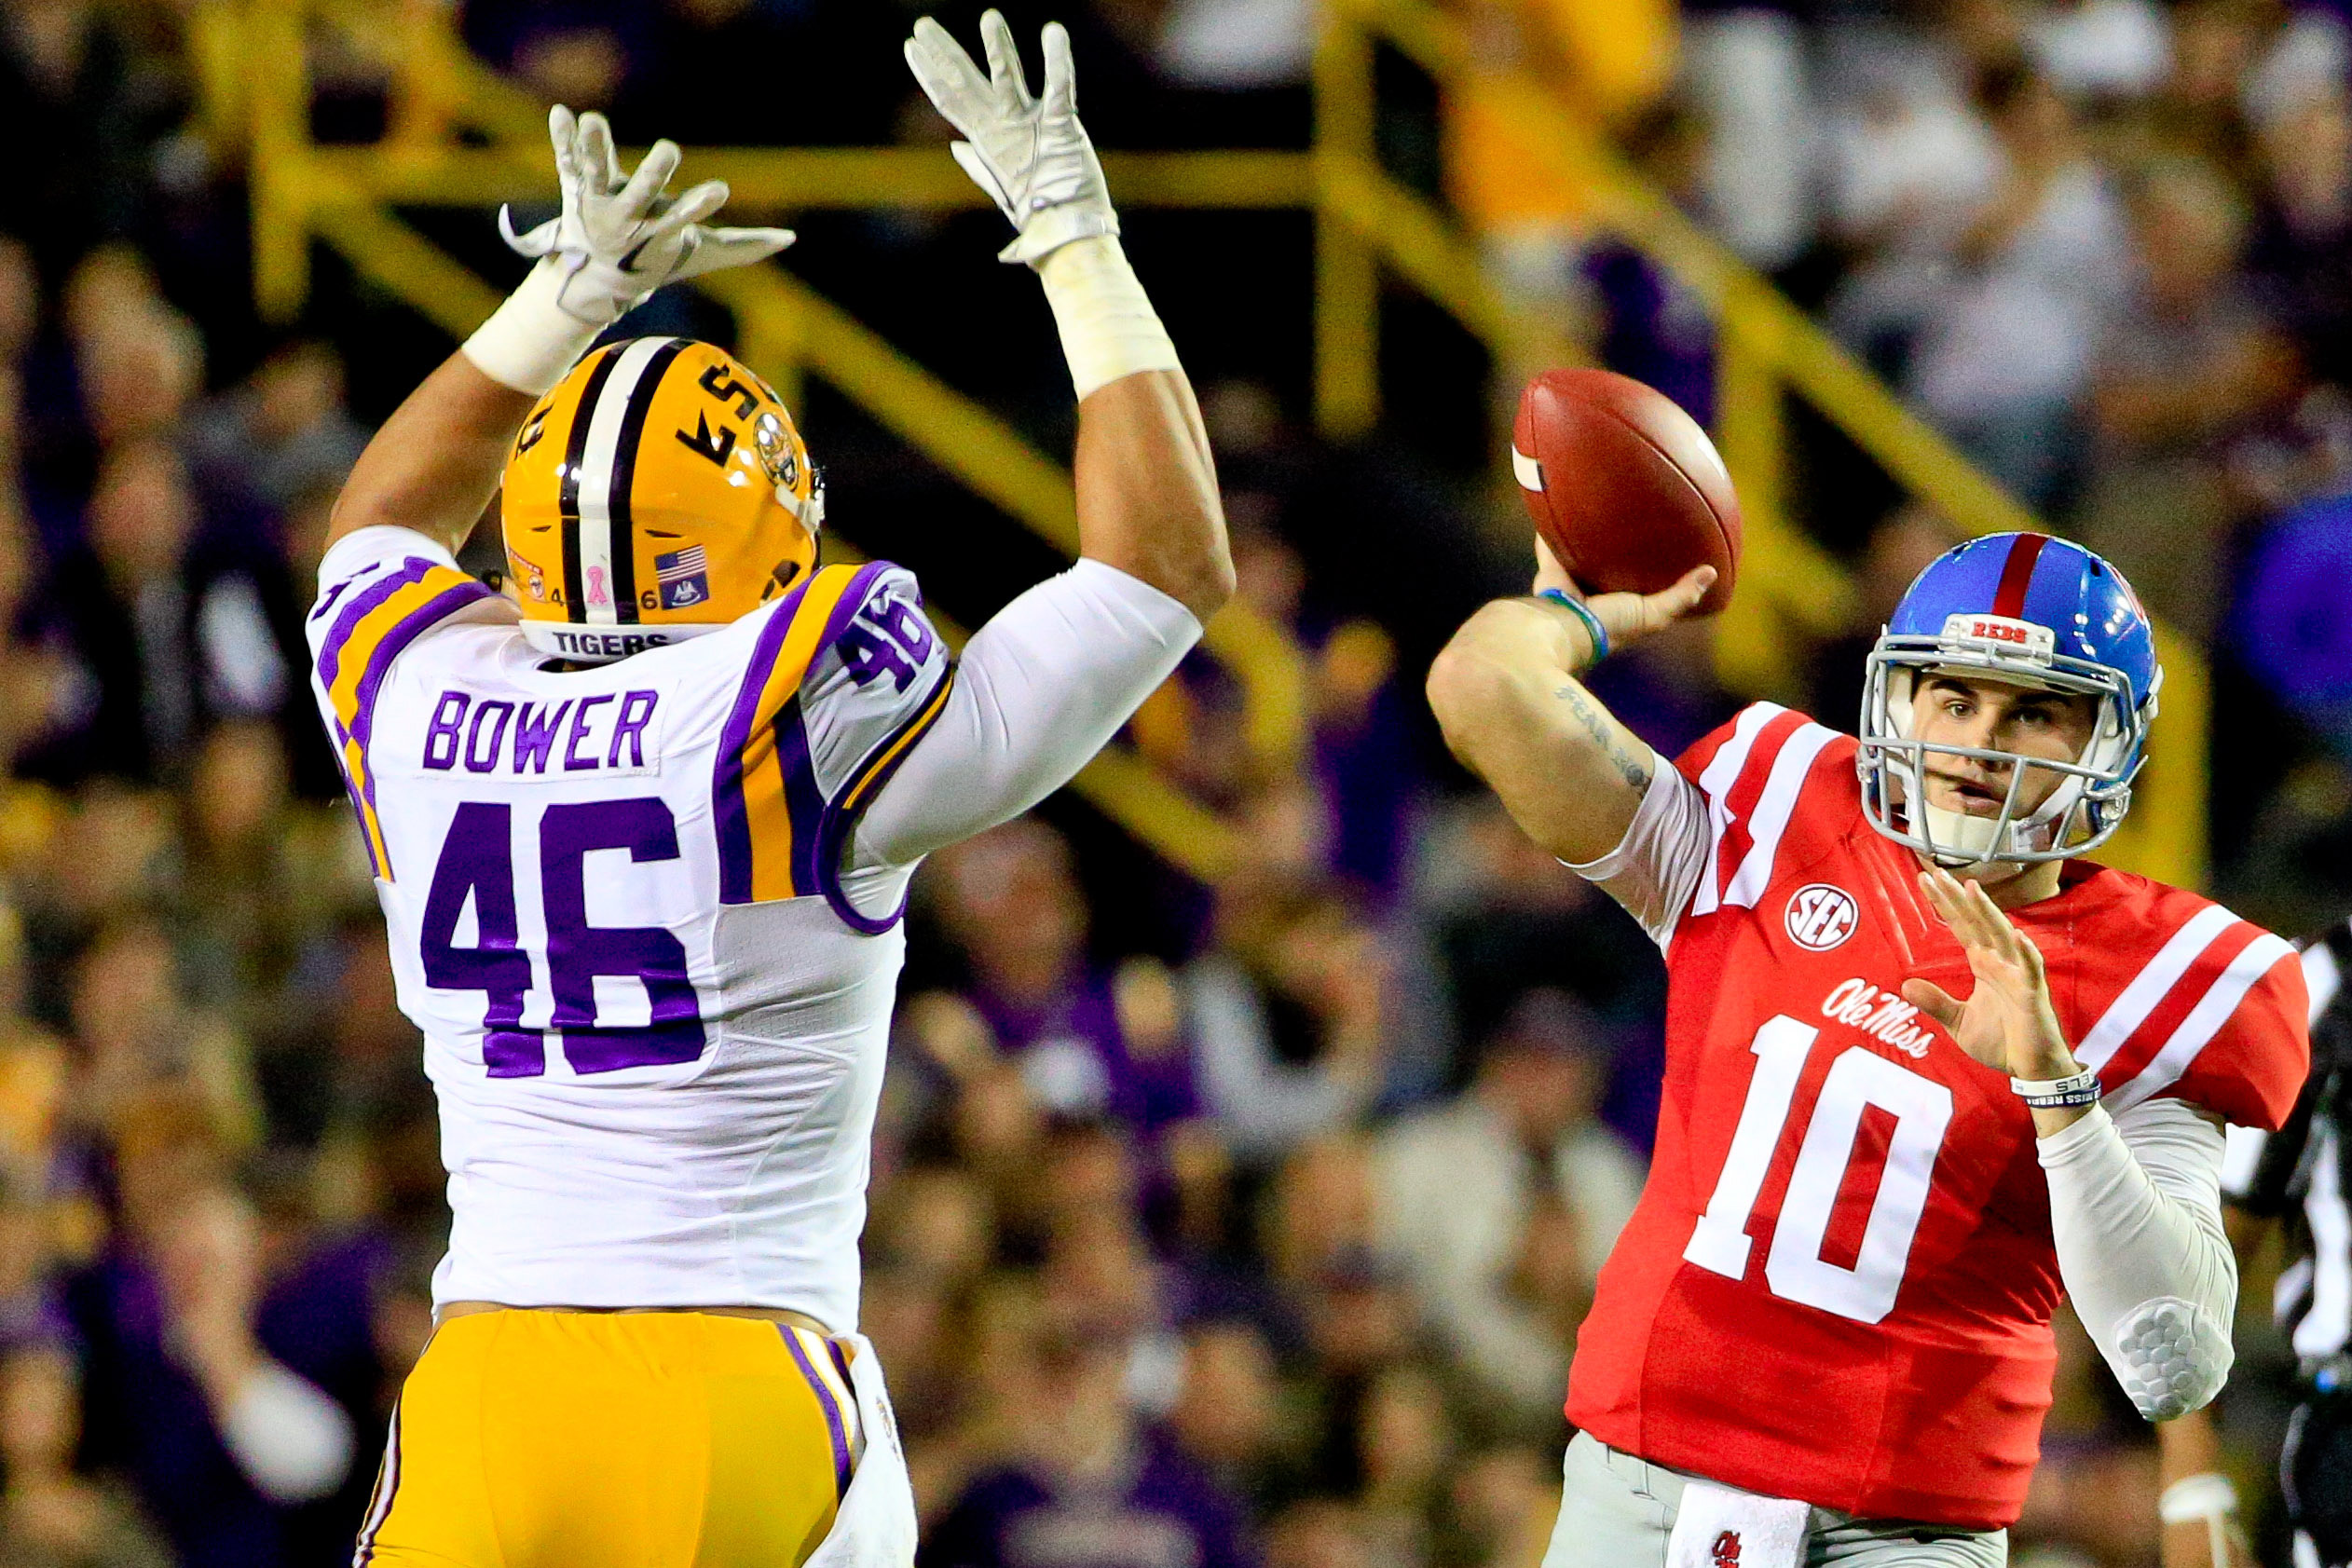 Oct 22, 2016; Baton Rouge, LA, USA; Mississippi Rebels quarterback Chad Kelly (10) throws past LSU Tigers defensive end Tashawn Bower (46) during the first half of a game at Tiger Stadium. Mandatory Credit: Derick E. Hingle-USA TODAY Sports